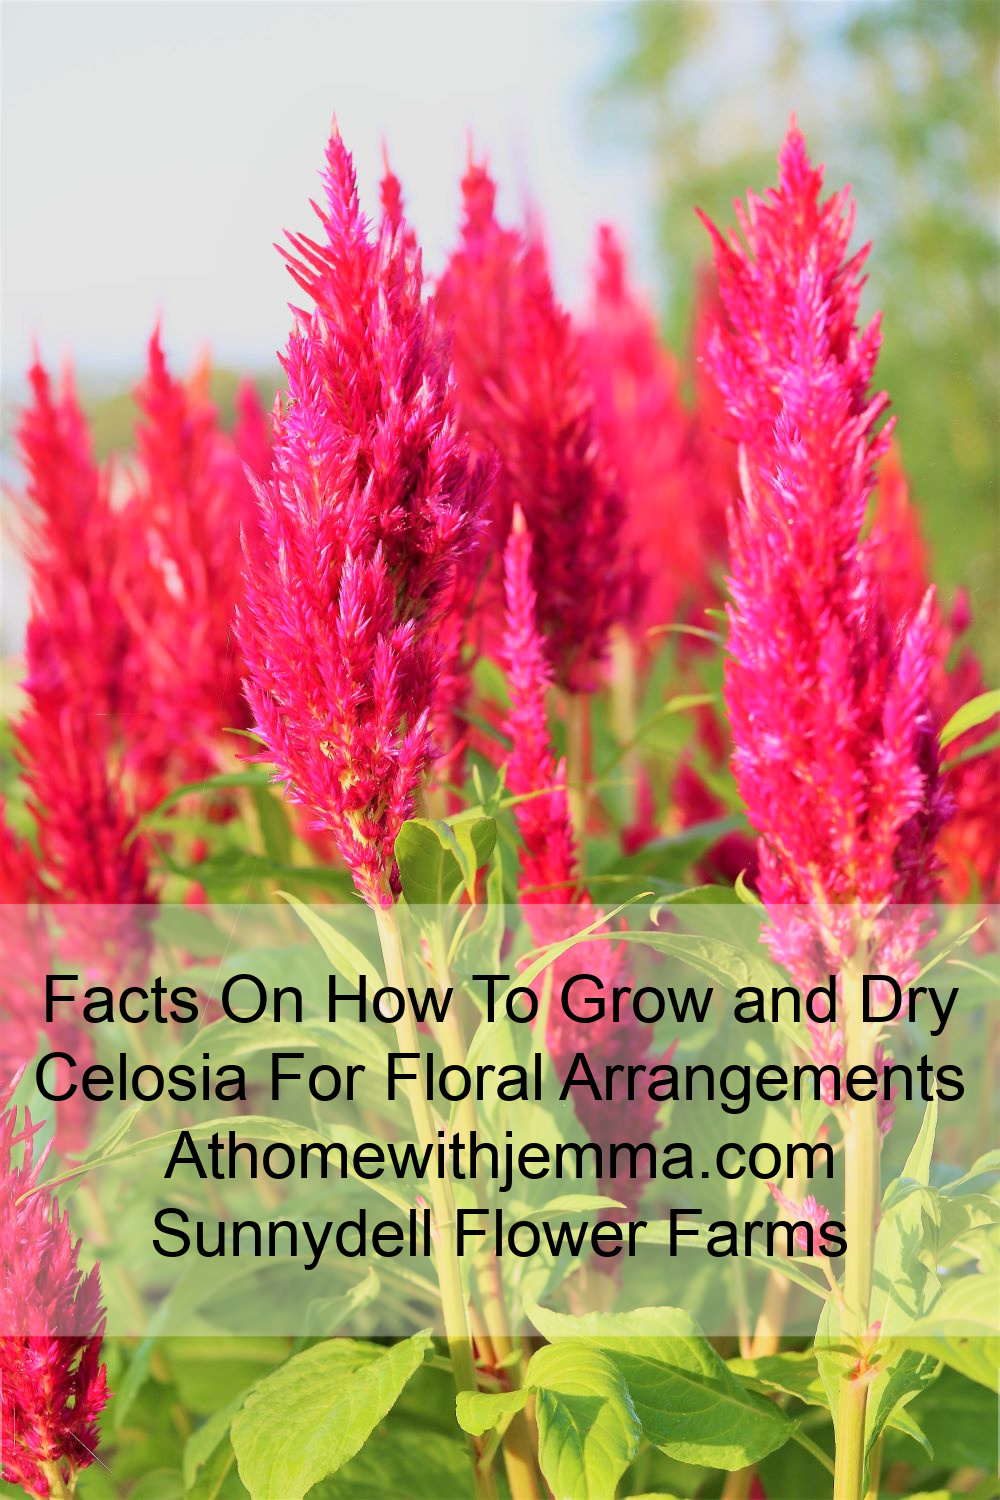 Bouquets-Drying-Gardening-Growing-Grower-Flowers-Facts-Tips-athomewithjemma